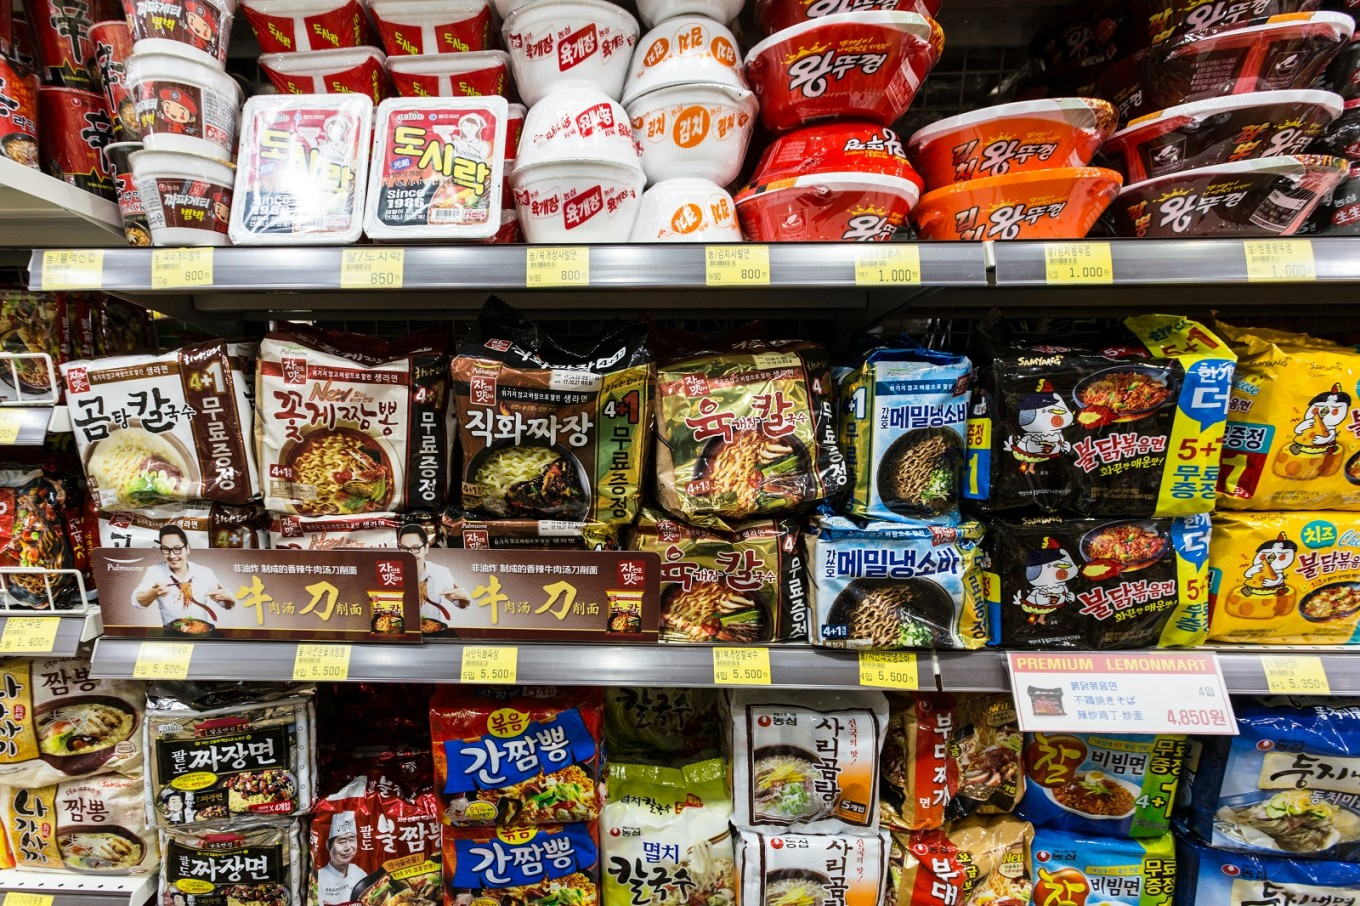 BPOM takes action over Korean instant noodles containing pork